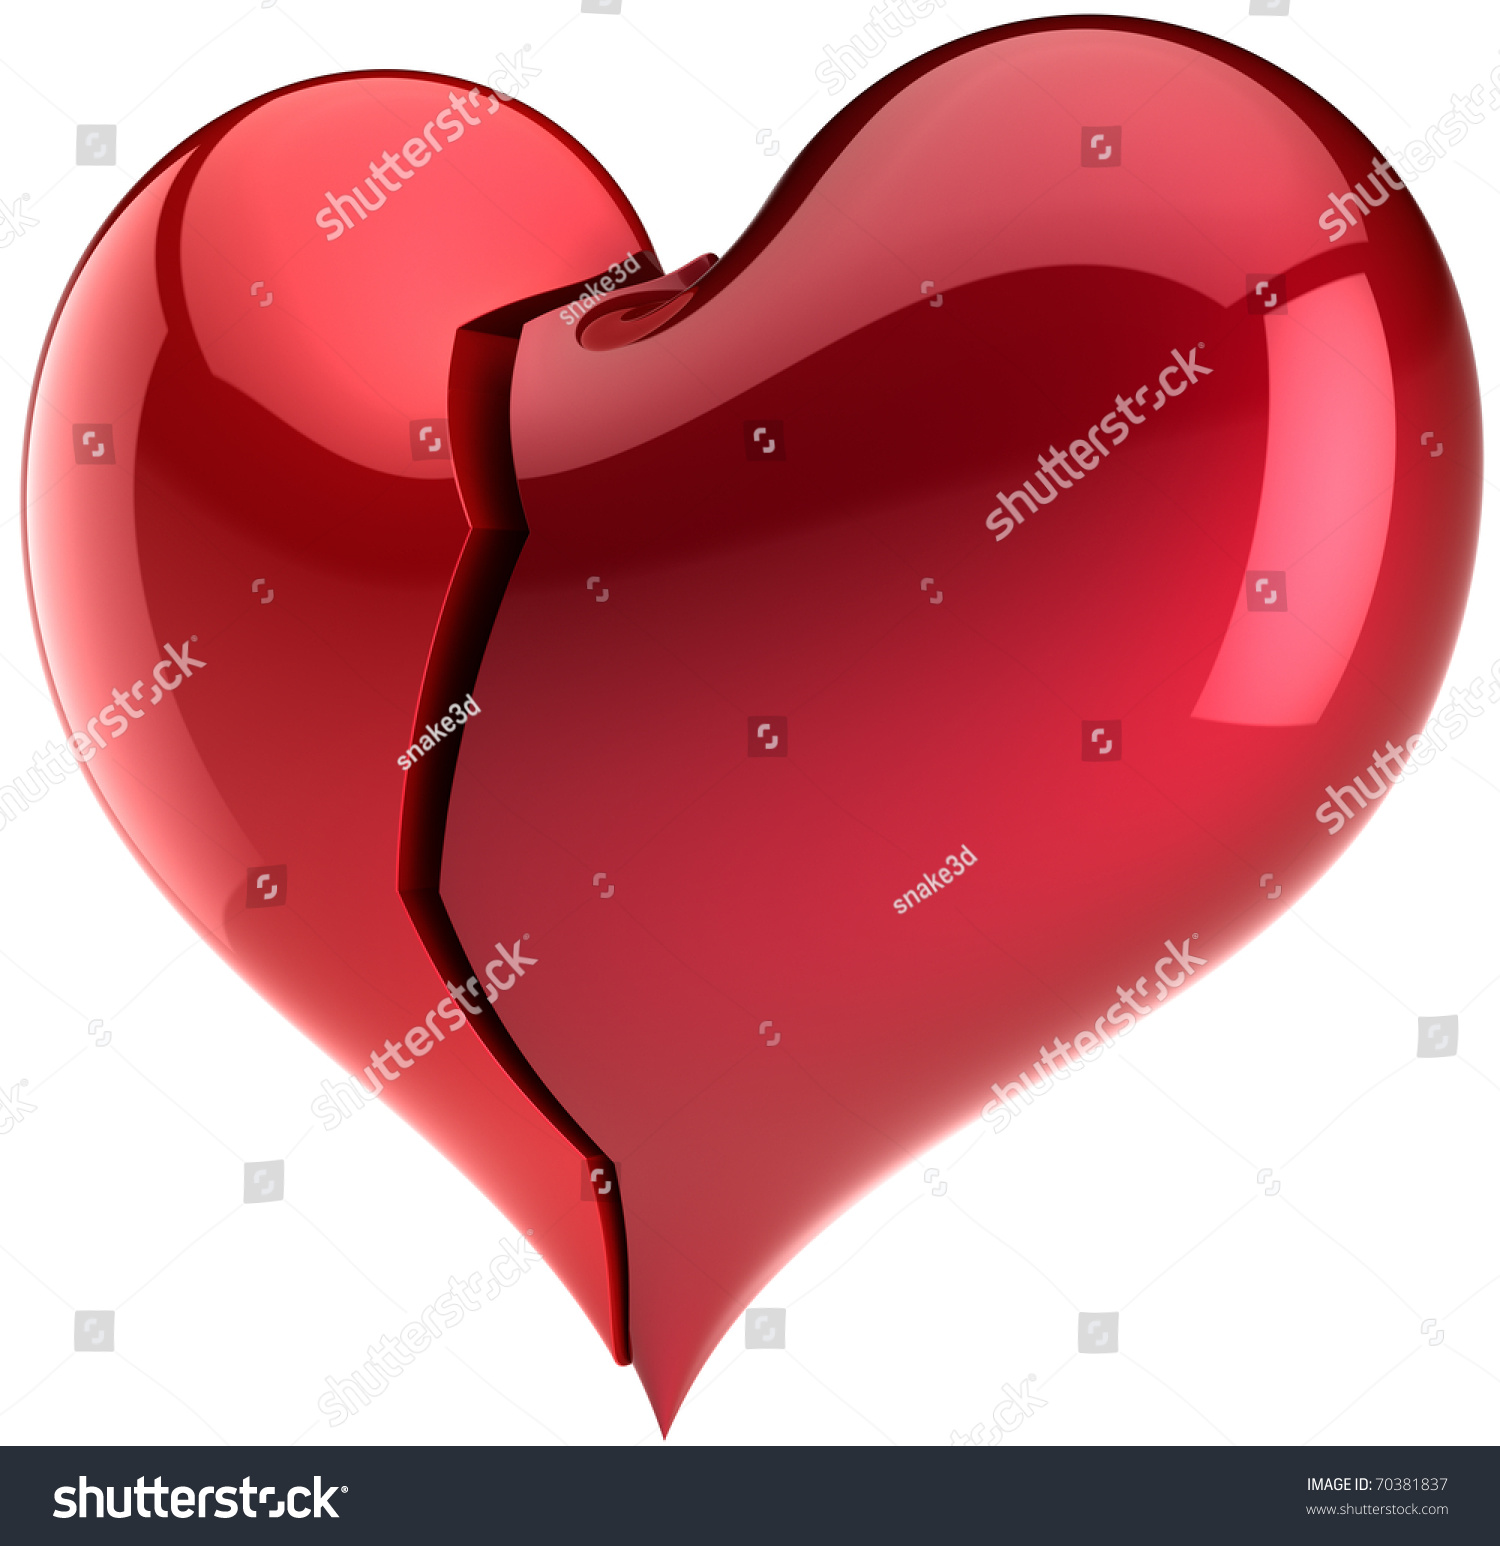 Heart shape broken two parts piece stock illustration 70381837 heart shape broken two parts piece red couple failure love symbol lonely depression divorce abstract saint buycottarizona Gallery